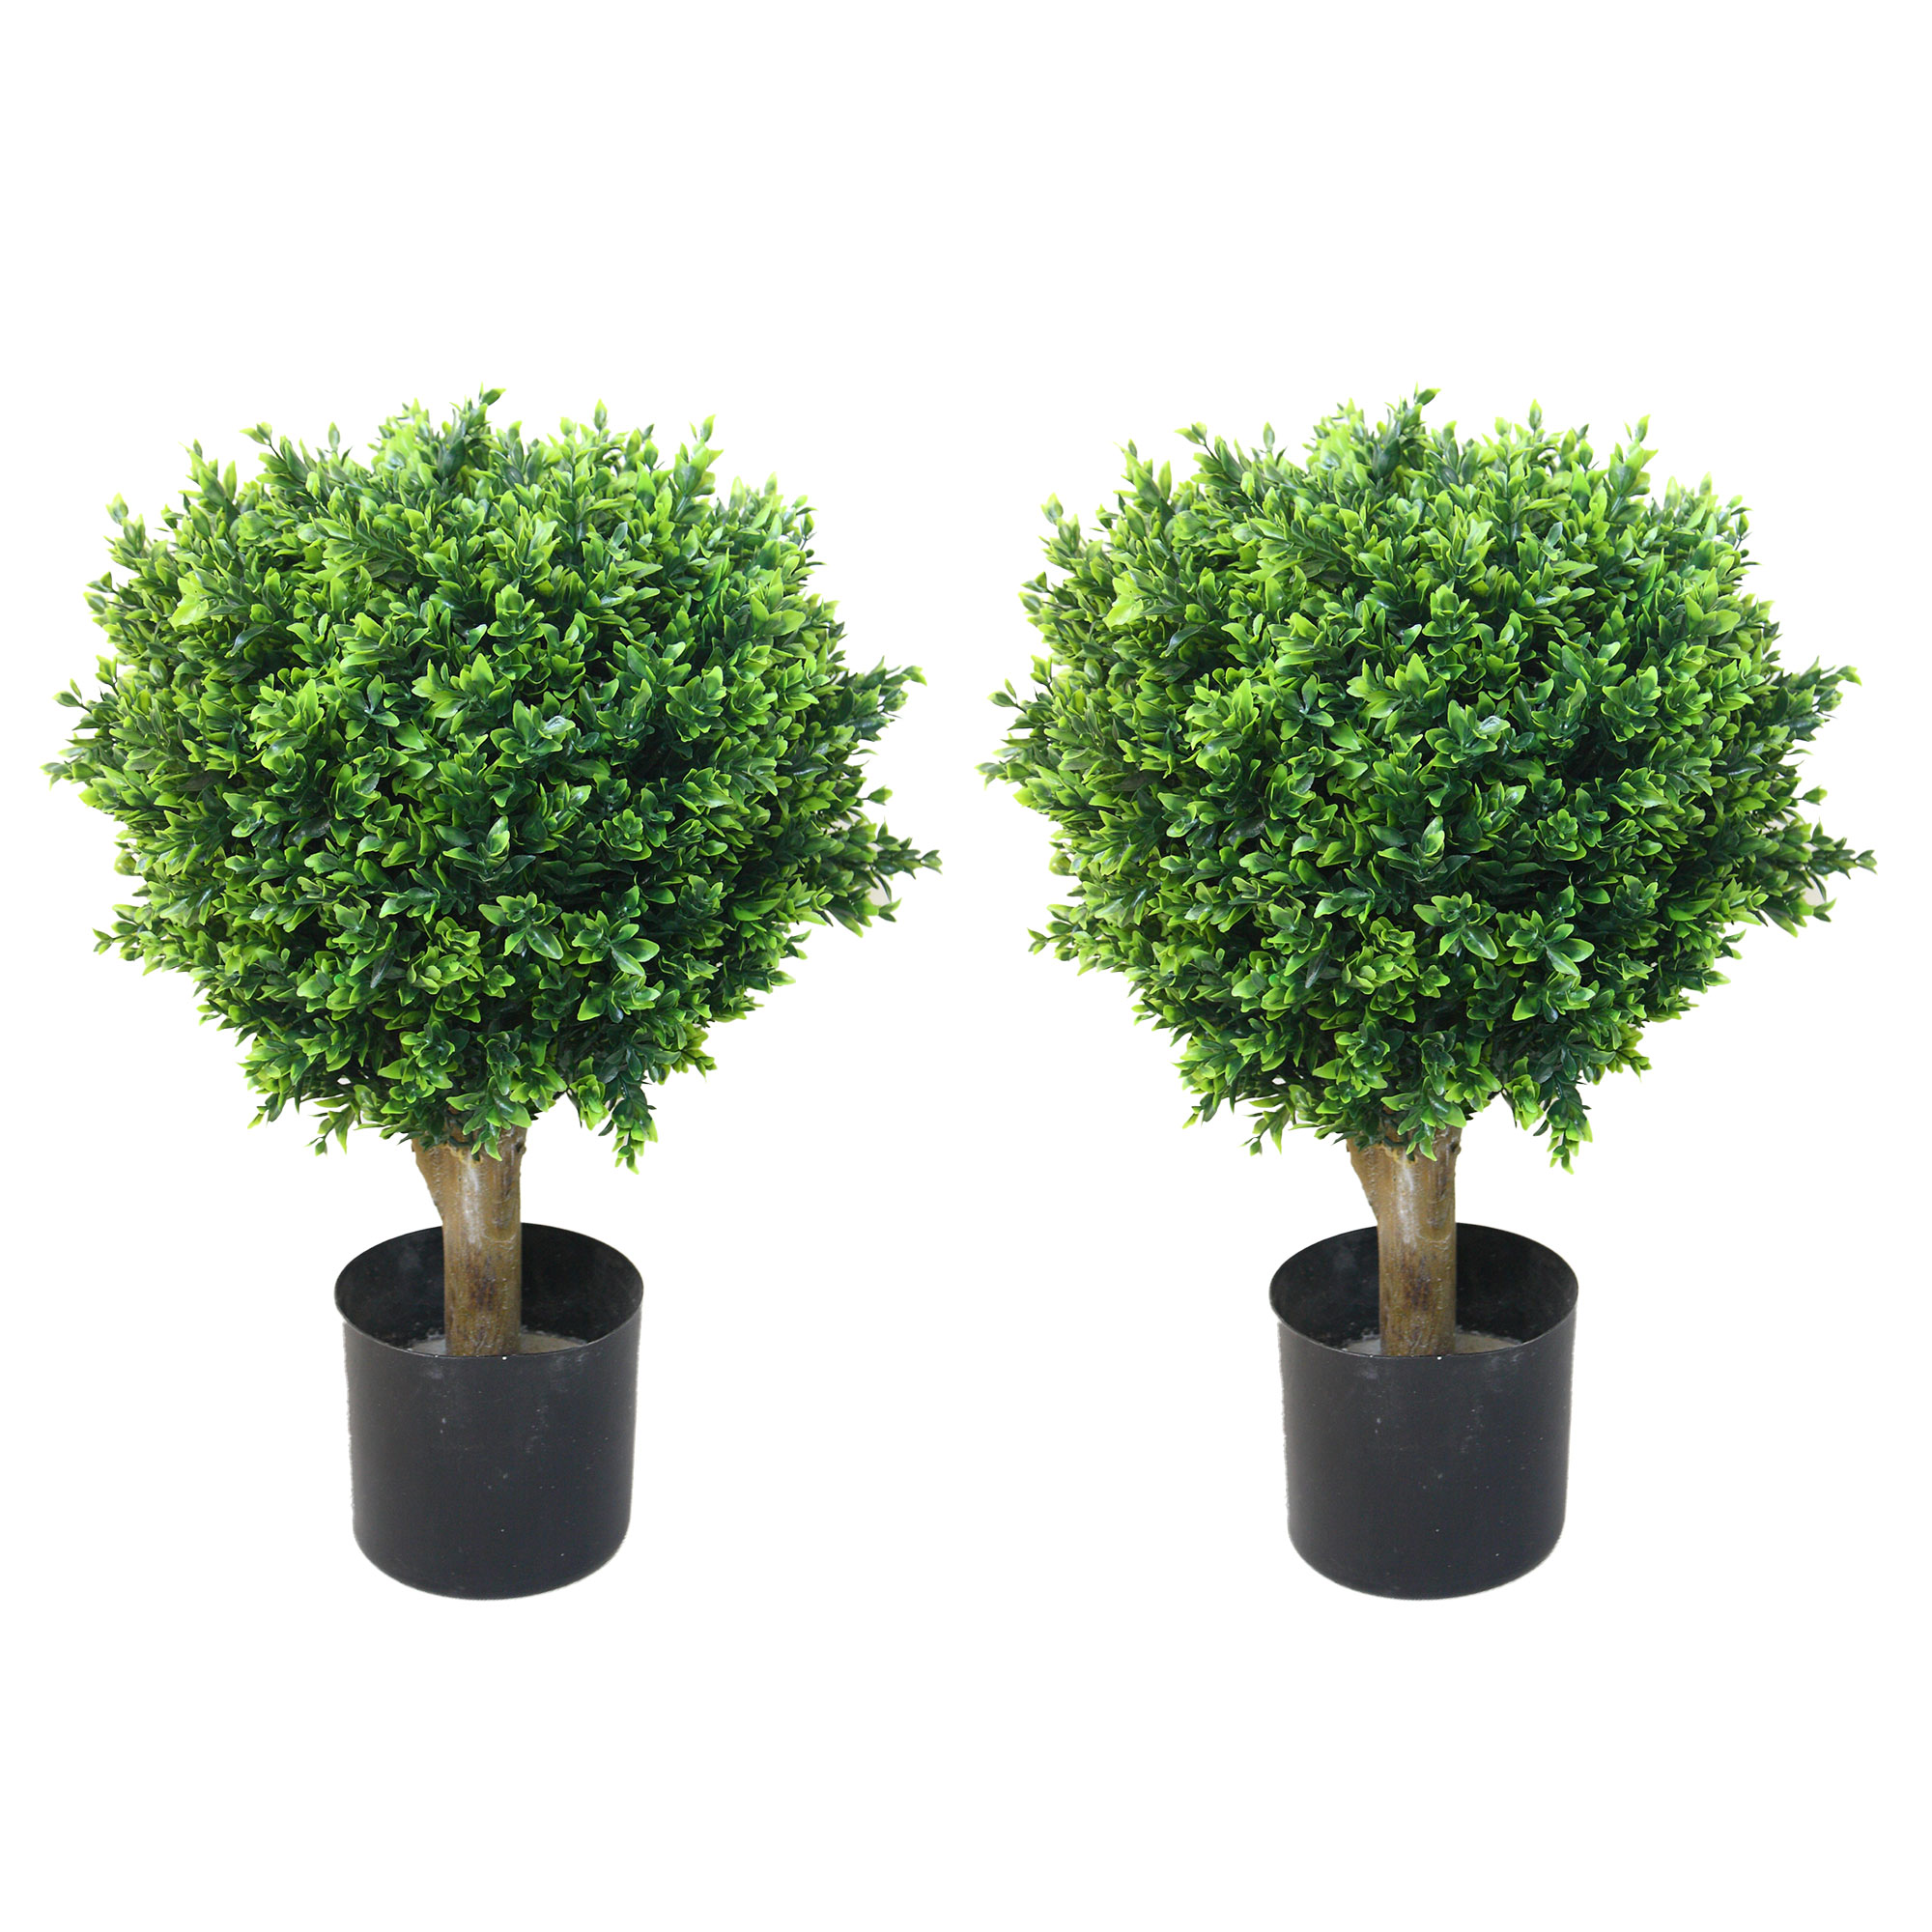 "Pure Garden 24"" Hedyotis Artificial Tree Topiary Indoor/Outdoor, Green, Set of 2"